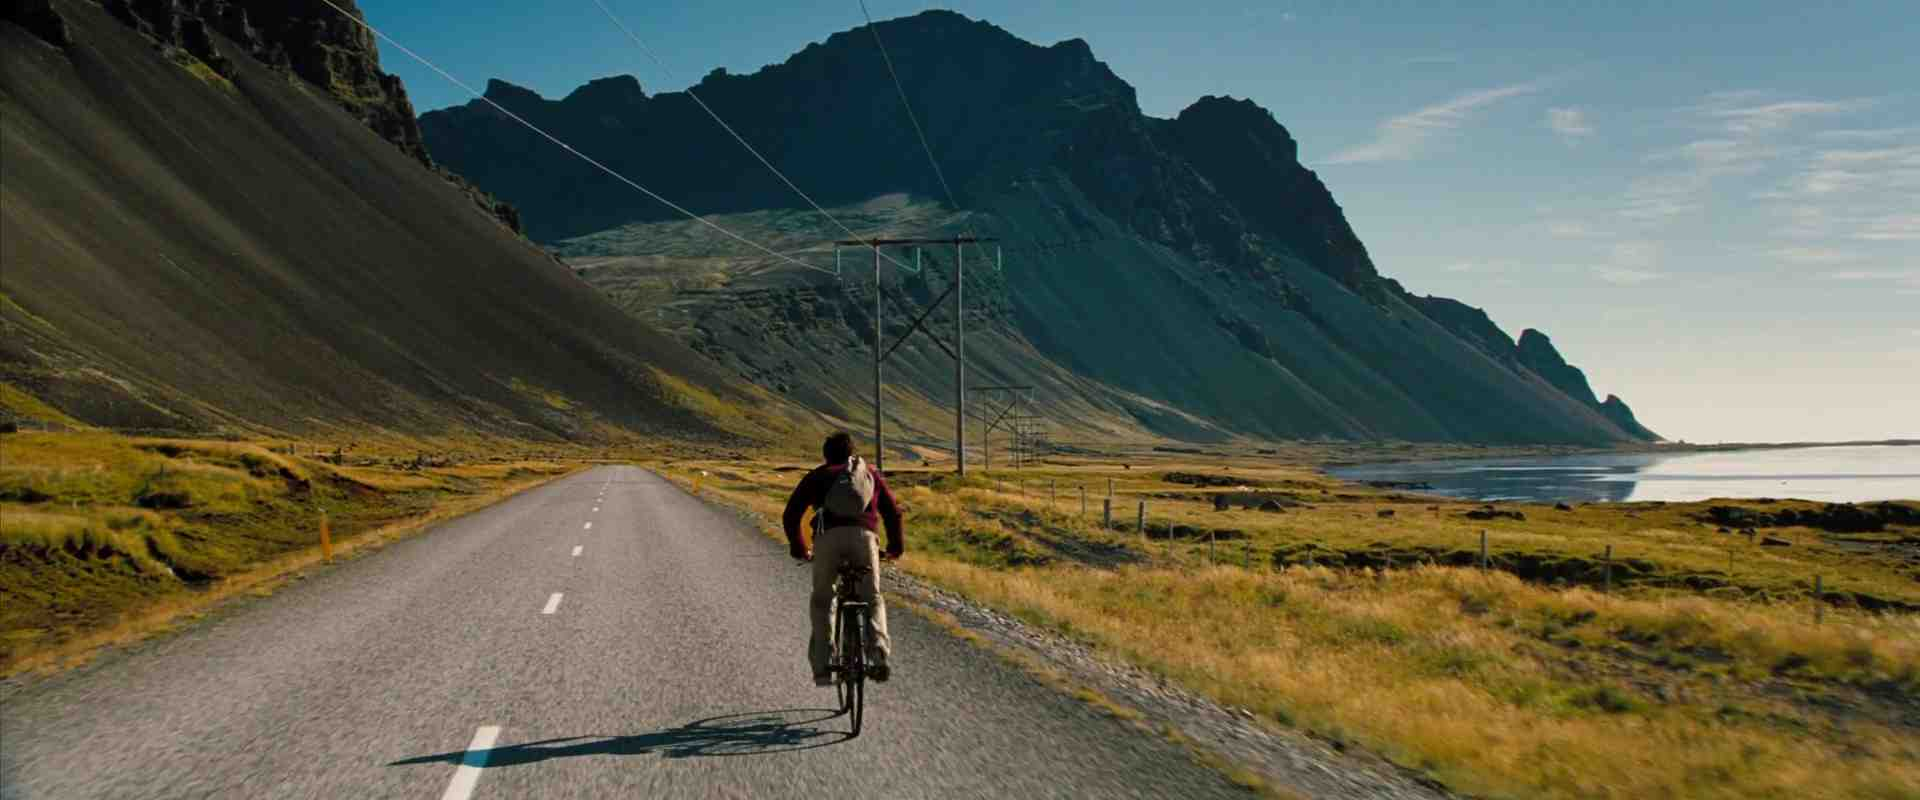 the-secret-life-of-walter-mitty-bicycle.jpg